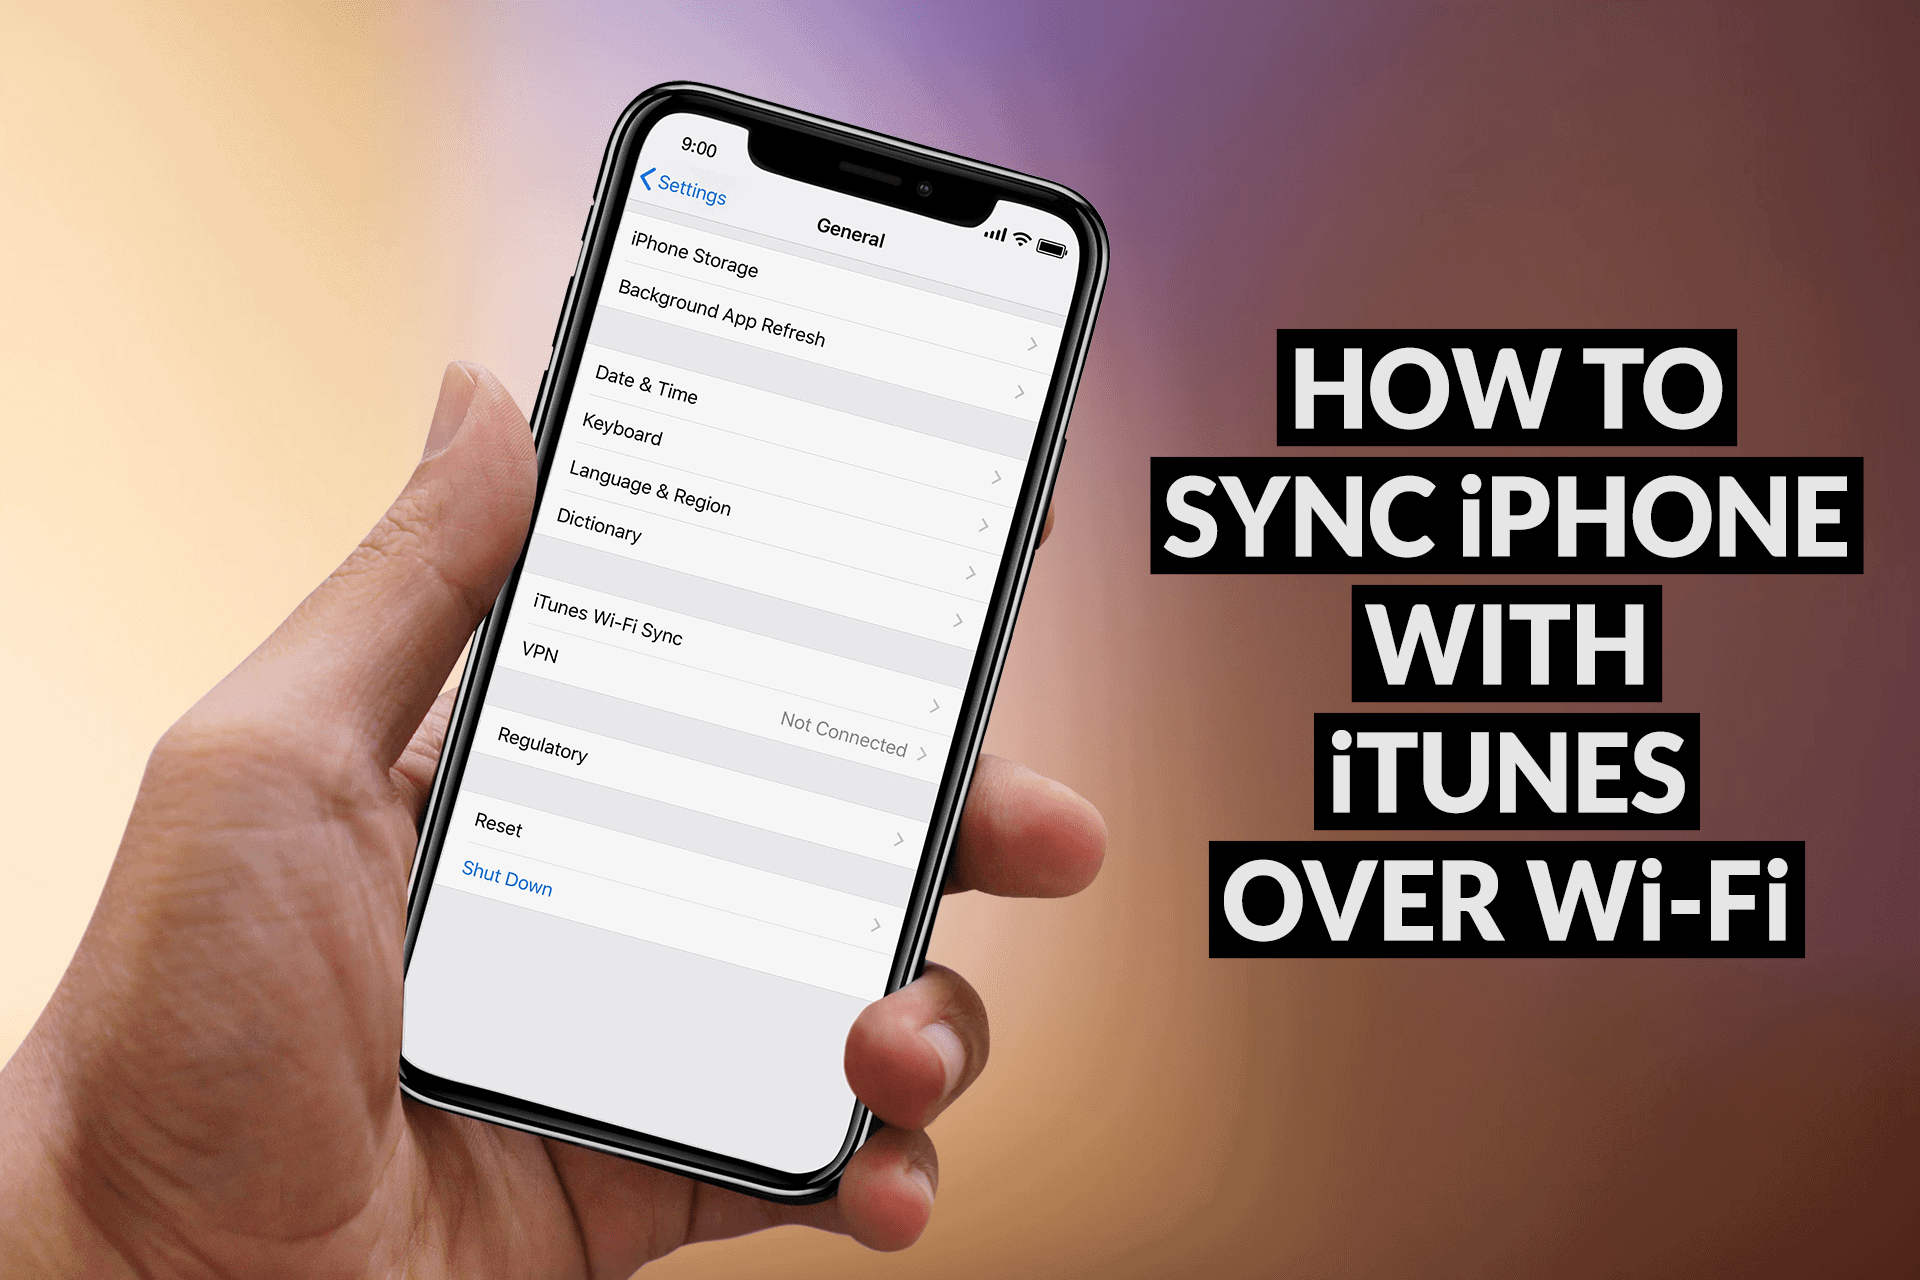 Sync iPhone with iTunes over Wi-Fi - iTunes Wi-Fi Sync